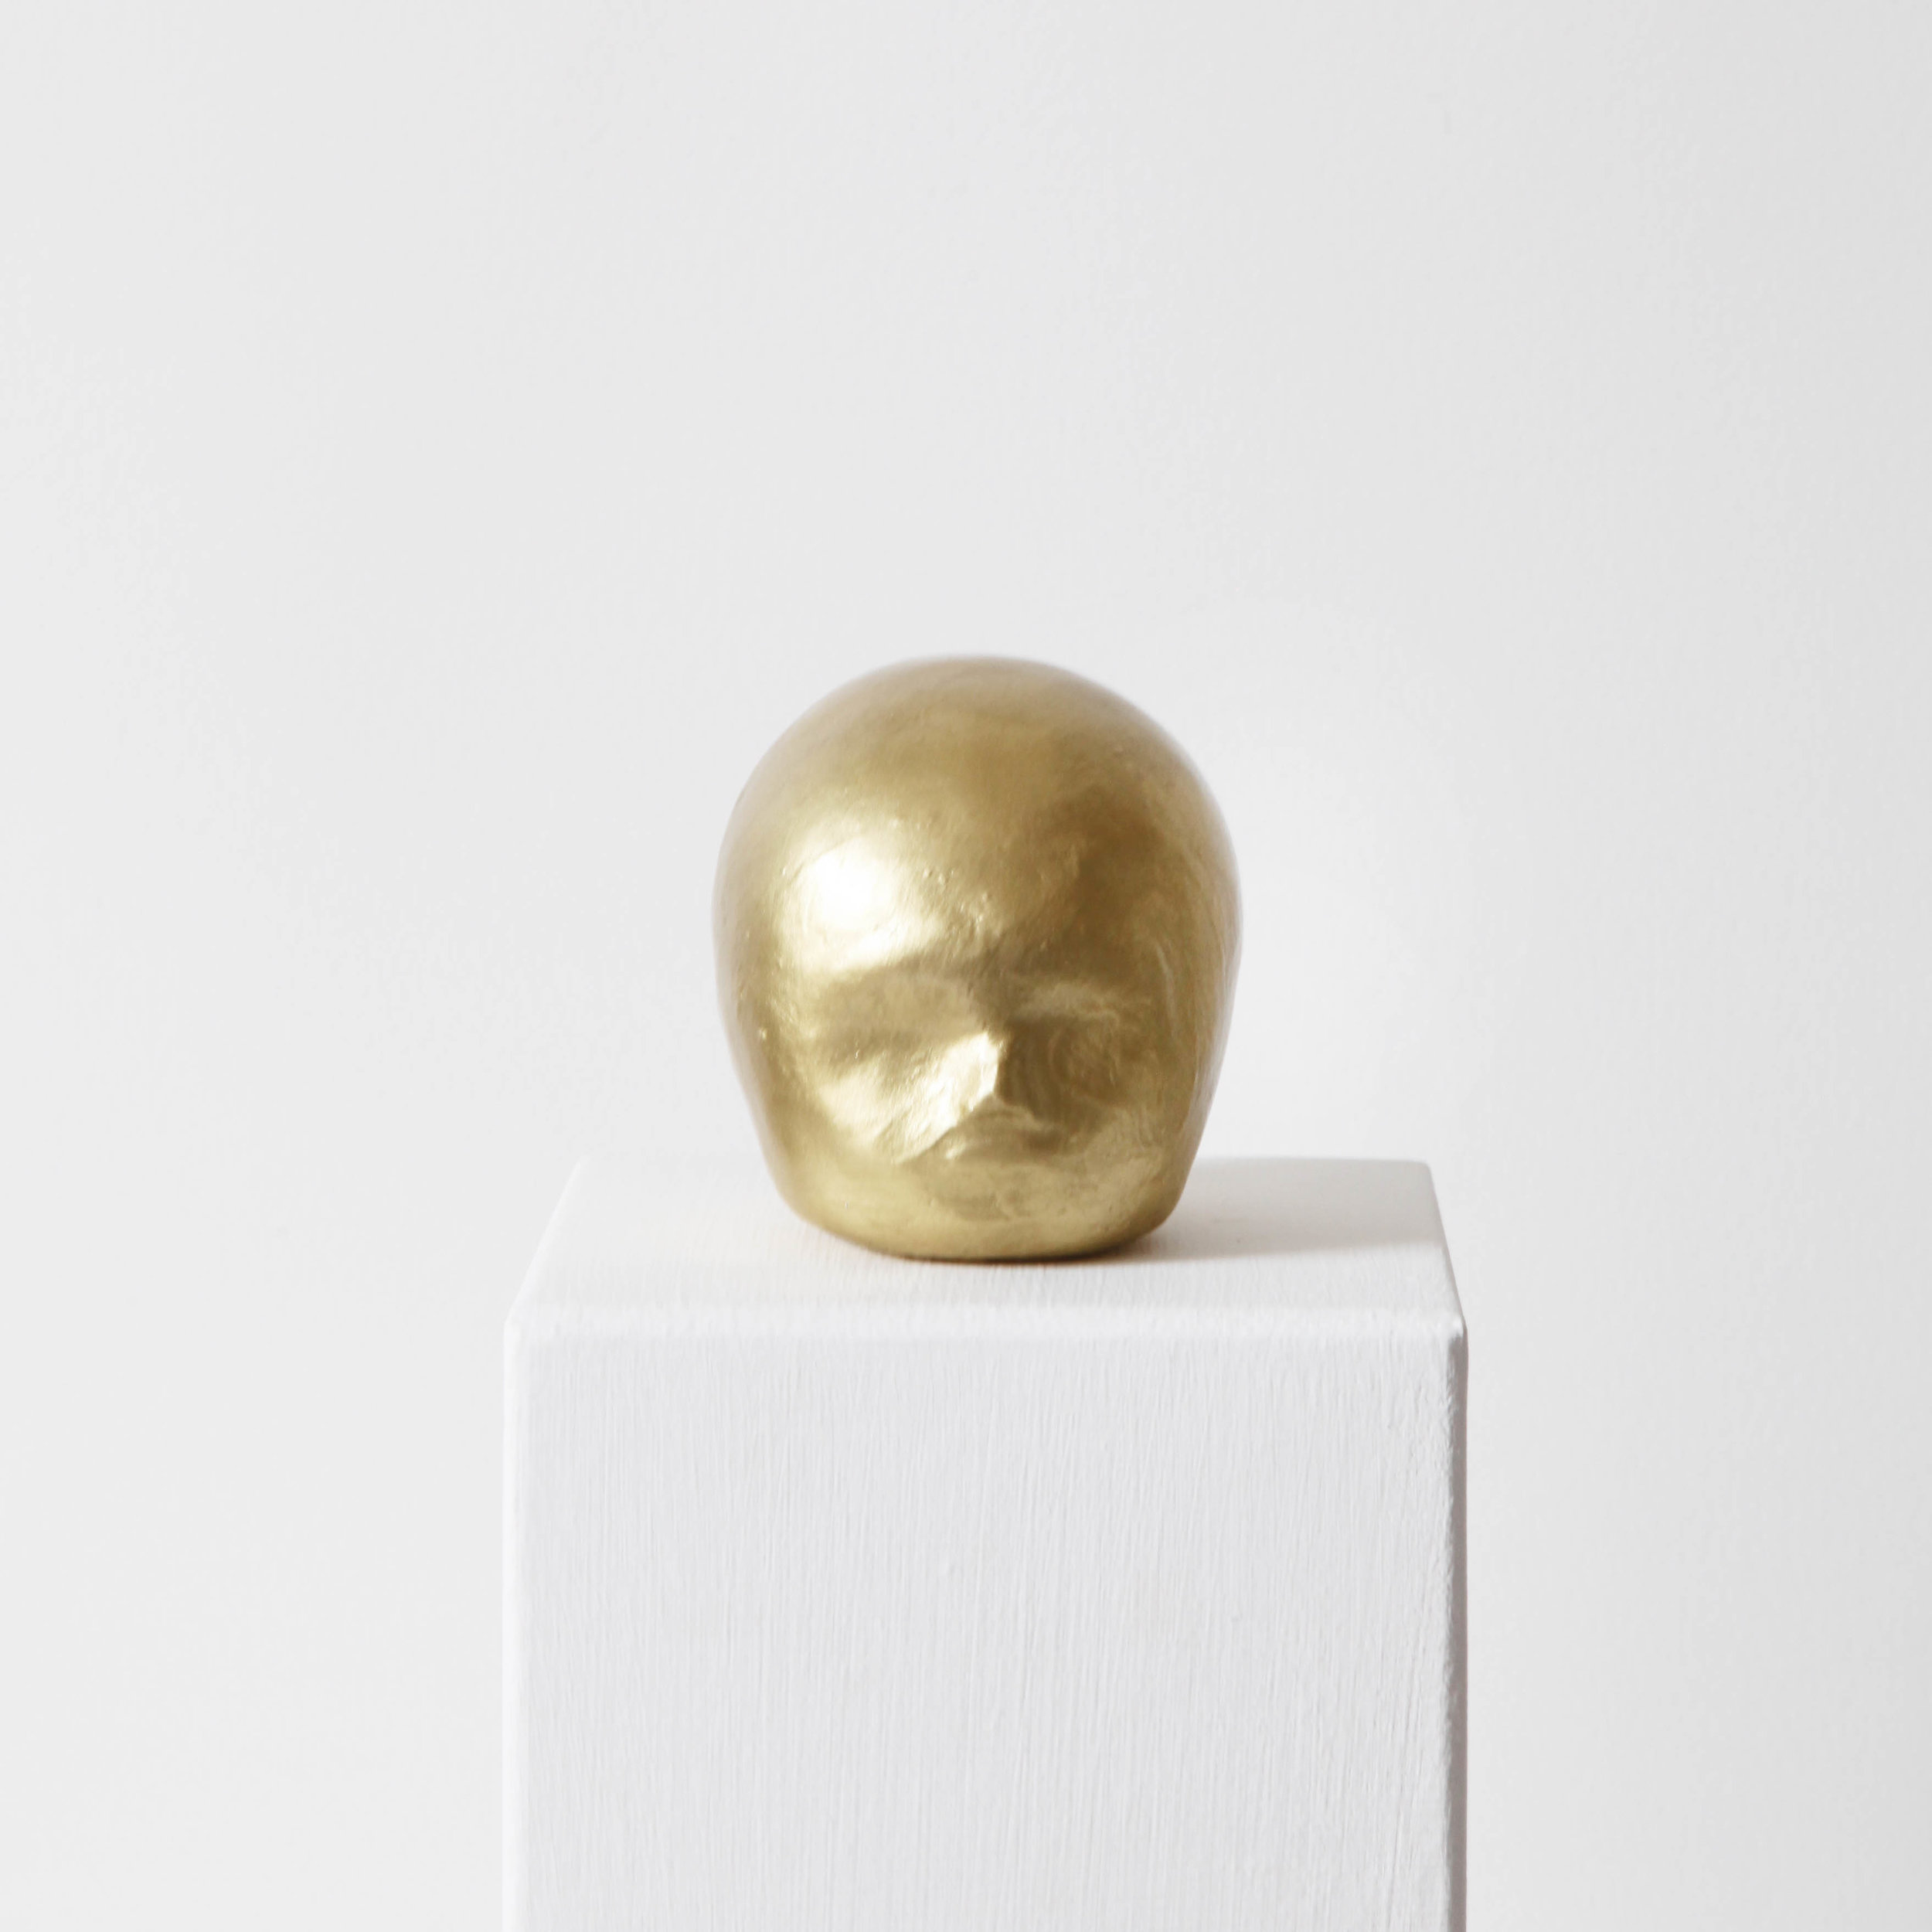 Facial development of the human embryo II  , 2017, raw clay, yellow gold pigment, lacquer and varnish, 8,6x7,4x8,8cm